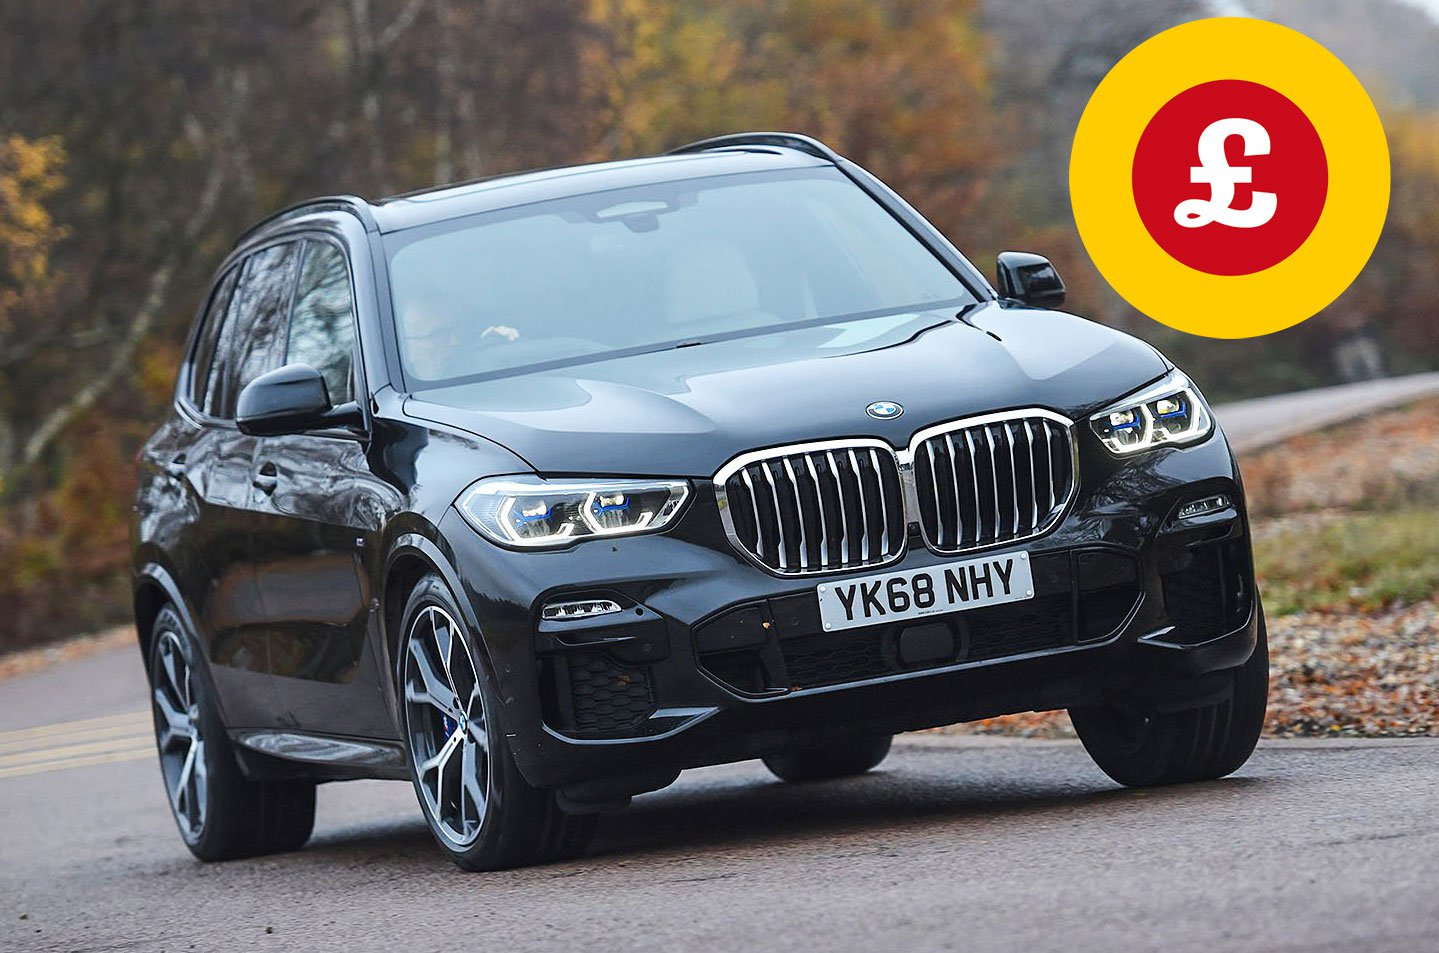 BMW X5 with Target Price logo